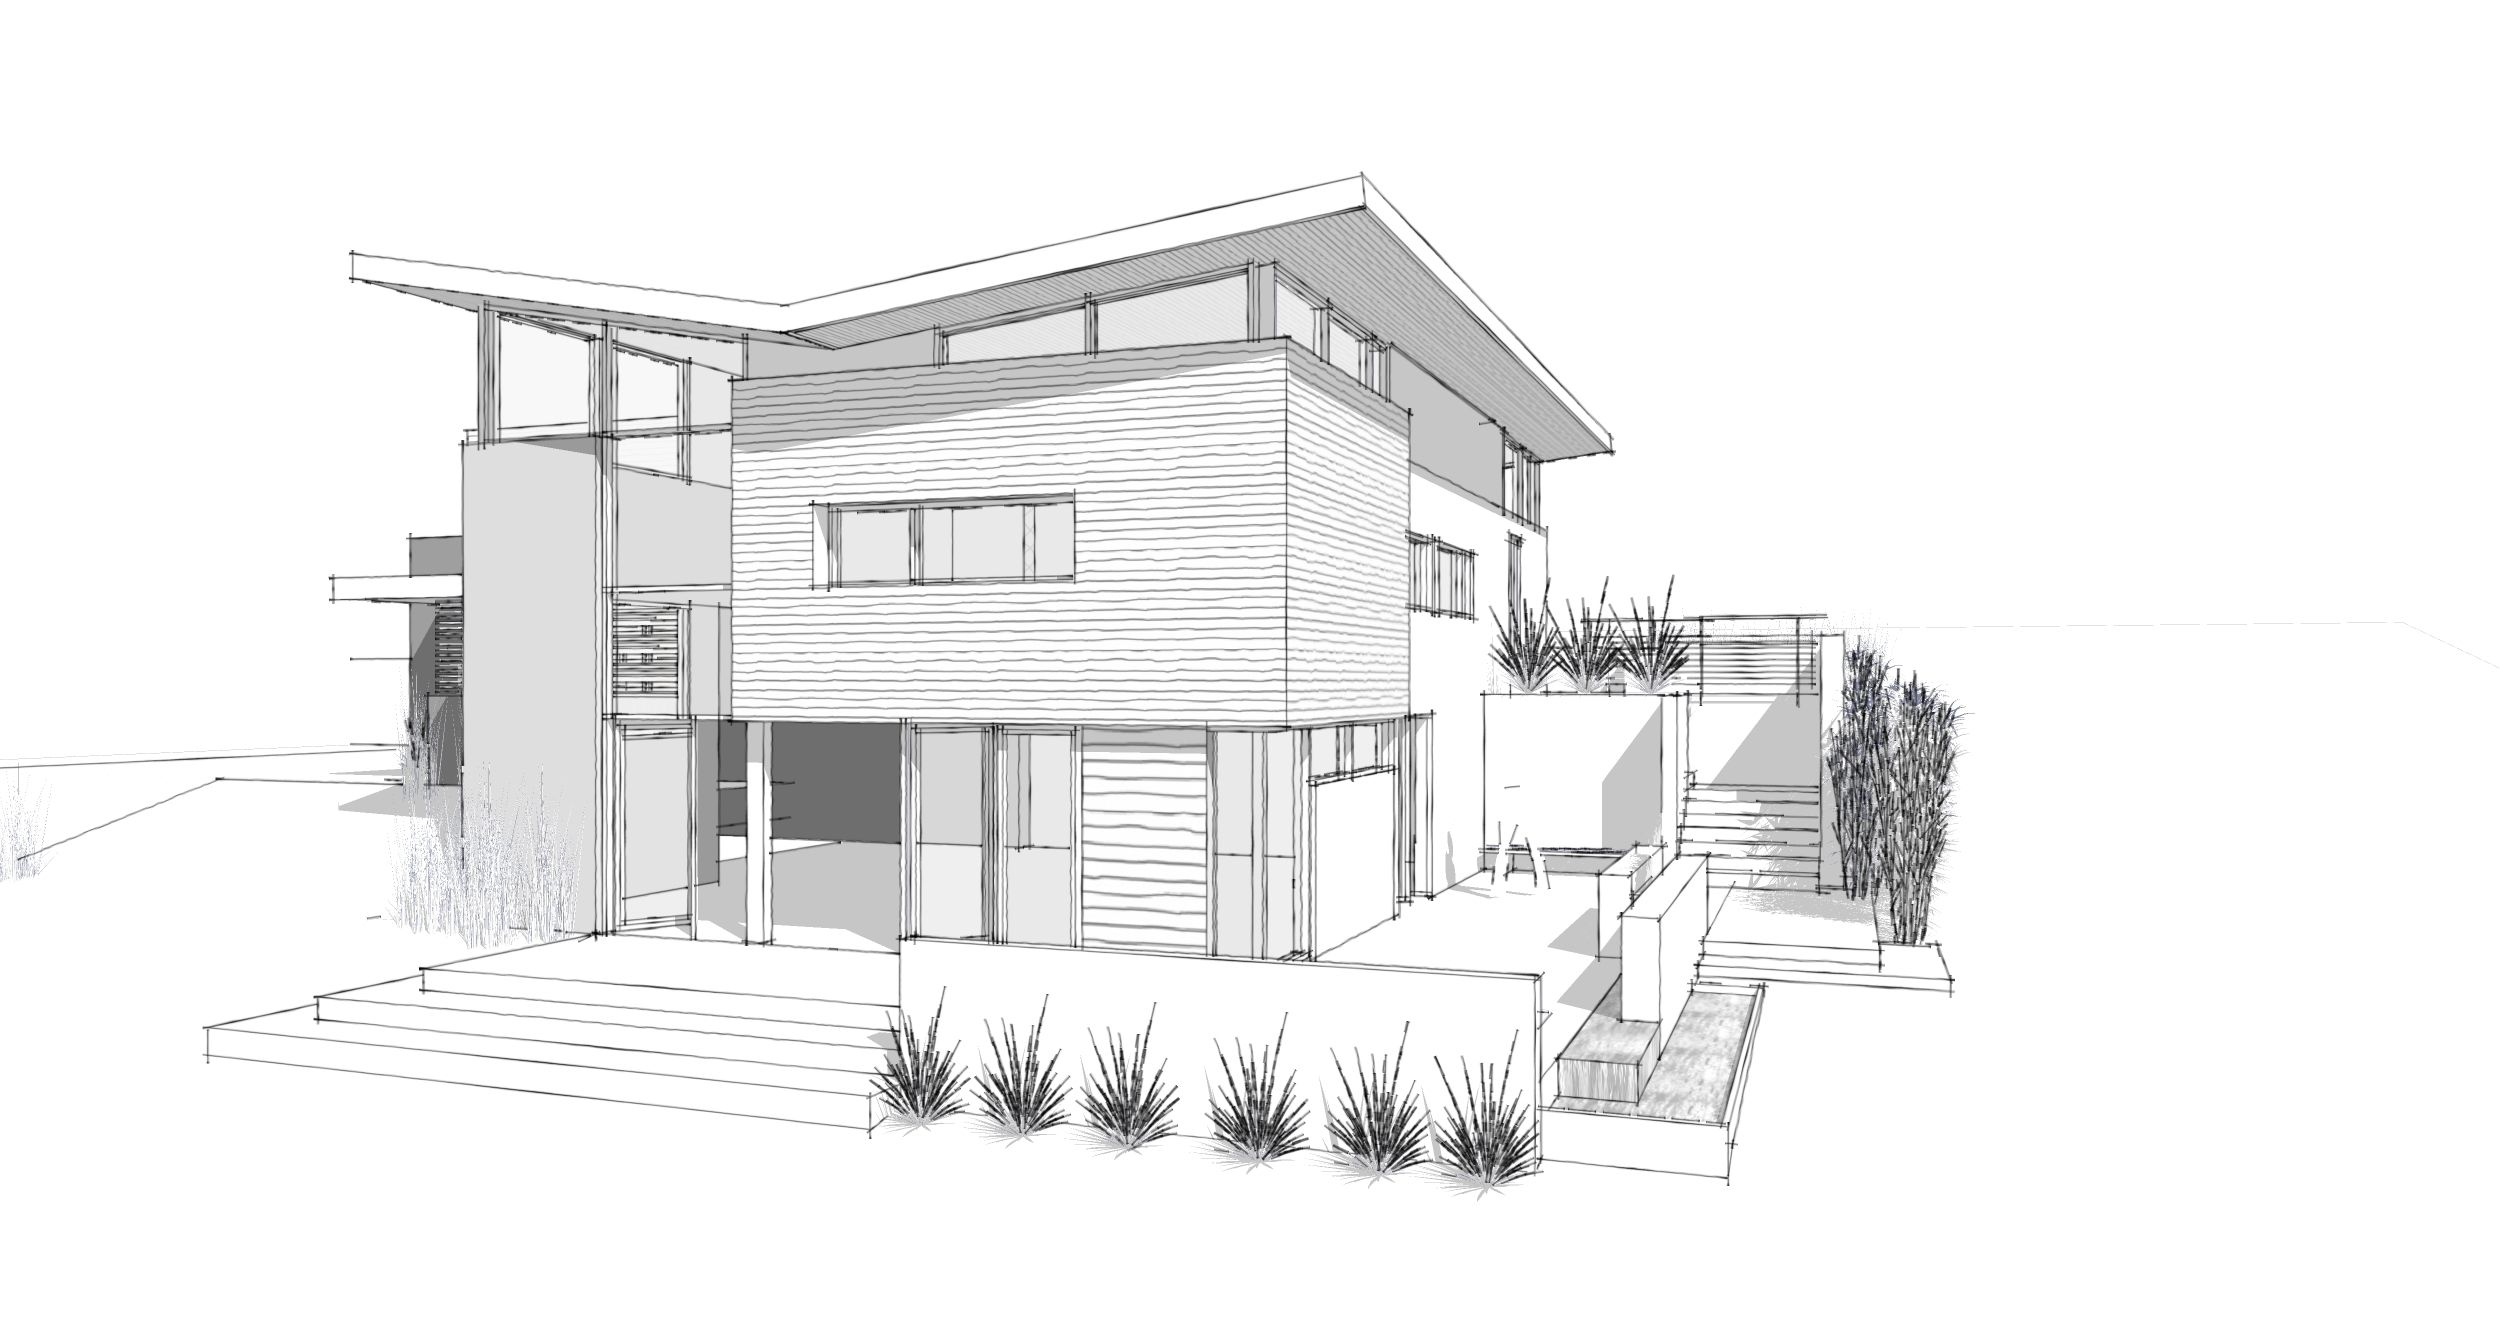 Modern home architecture sketches design ideas 13435 for House sketches from photos